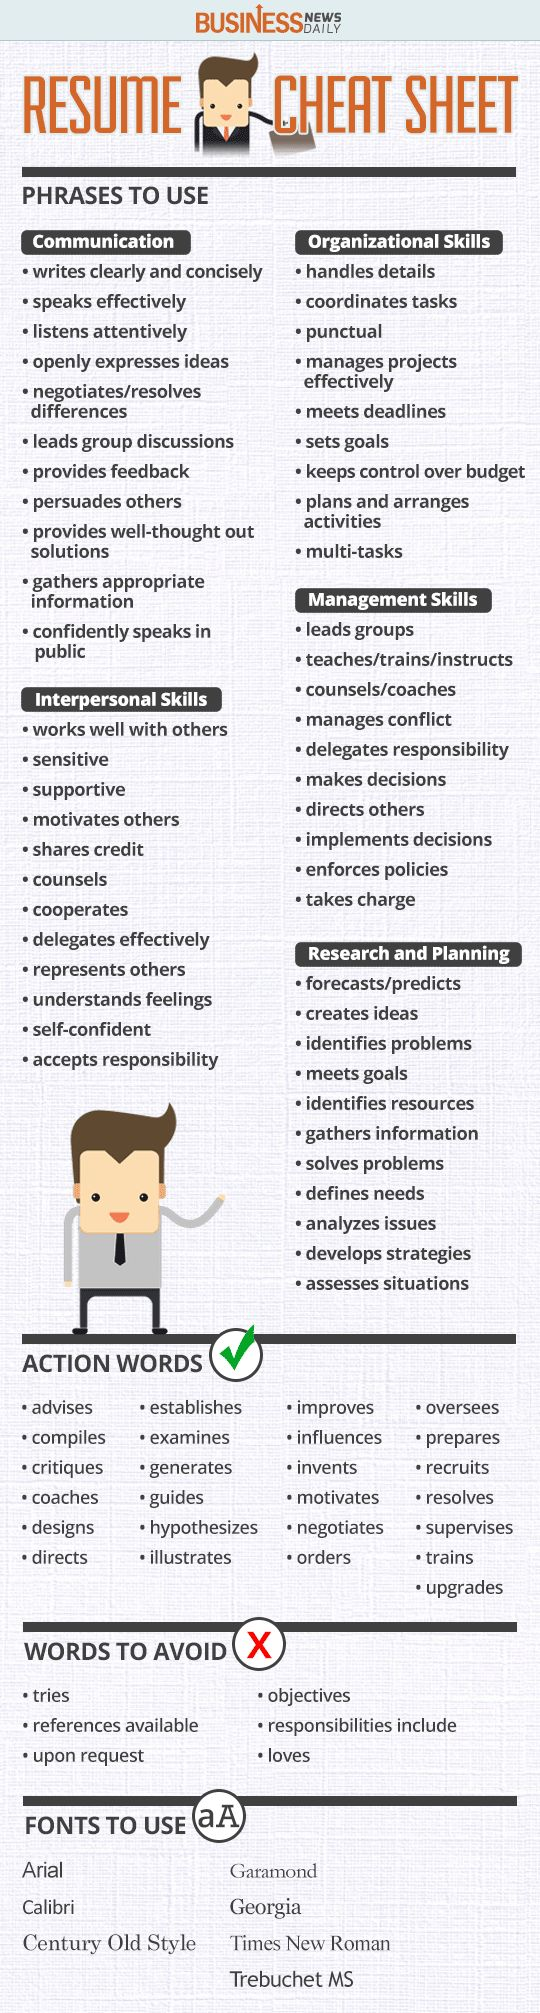 Opposenewapstandardsus  Winning  Ideas About Resume On Pinterest  Cv Format Resume Cv And  With Fetching Resume Cheat Sheet Infographic Andrews Almost Done With A Complete Unit On Employment Which With Archaic Recruiting Resume Also Massage Resume In Addition Latex Template Resume And Data Entry Job Description For Resume As Well As Resume For Actors Additionally How To Write A Basic Resume For A Job From Pinterestcom With Opposenewapstandardsus  Fetching  Ideas About Resume On Pinterest  Cv Format Resume Cv And  With Archaic Resume Cheat Sheet Infographic Andrews Almost Done With A Complete Unit On Employment Which And Winning Recruiting Resume Also Massage Resume In Addition Latex Template Resume From Pinterestcom